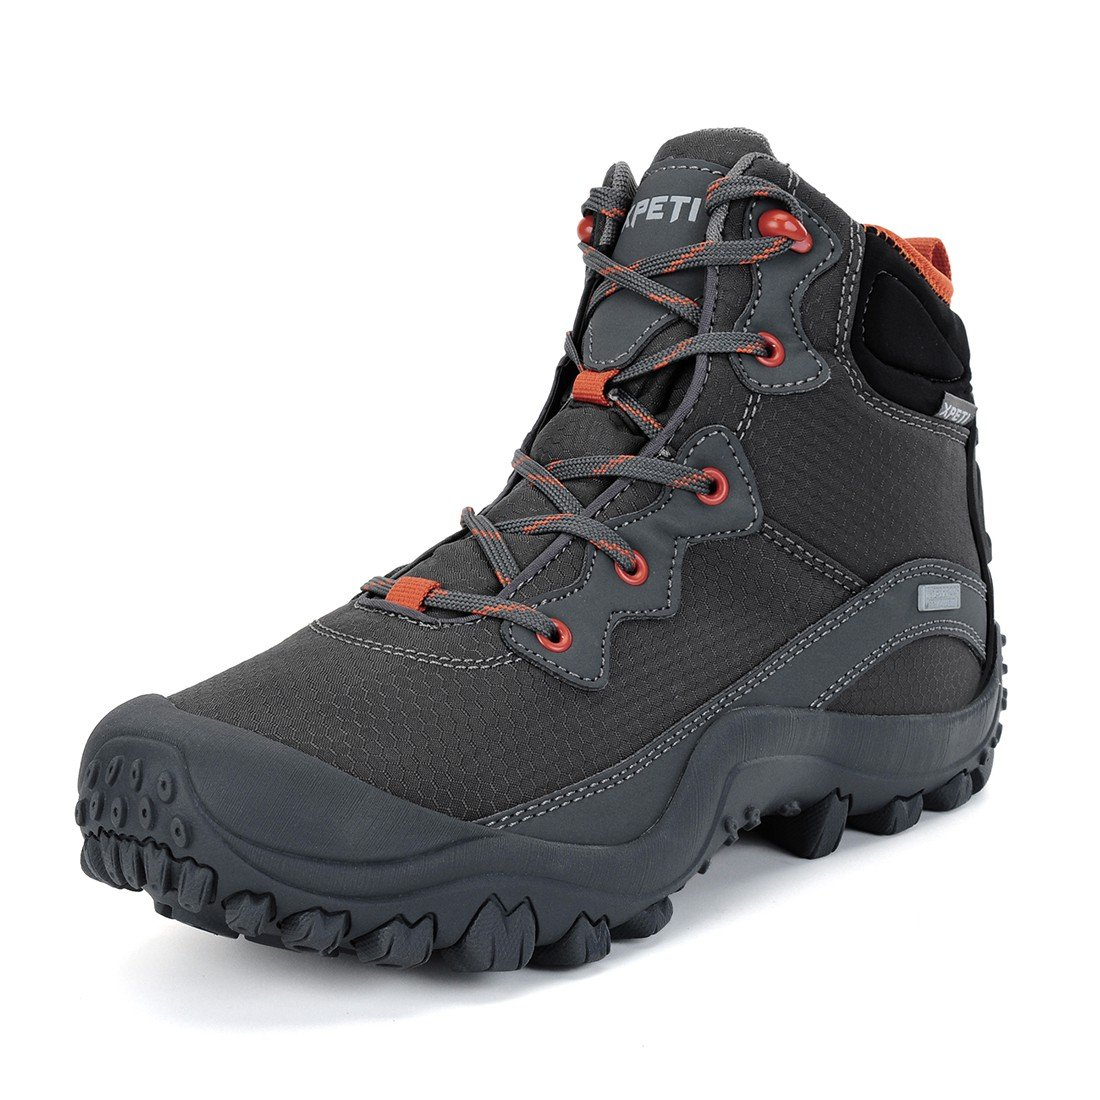 a5d18a4d81c XPETI Mens Dimo Mid Waterproof Hiking Trail Outdoor Boot - citwebdev ...